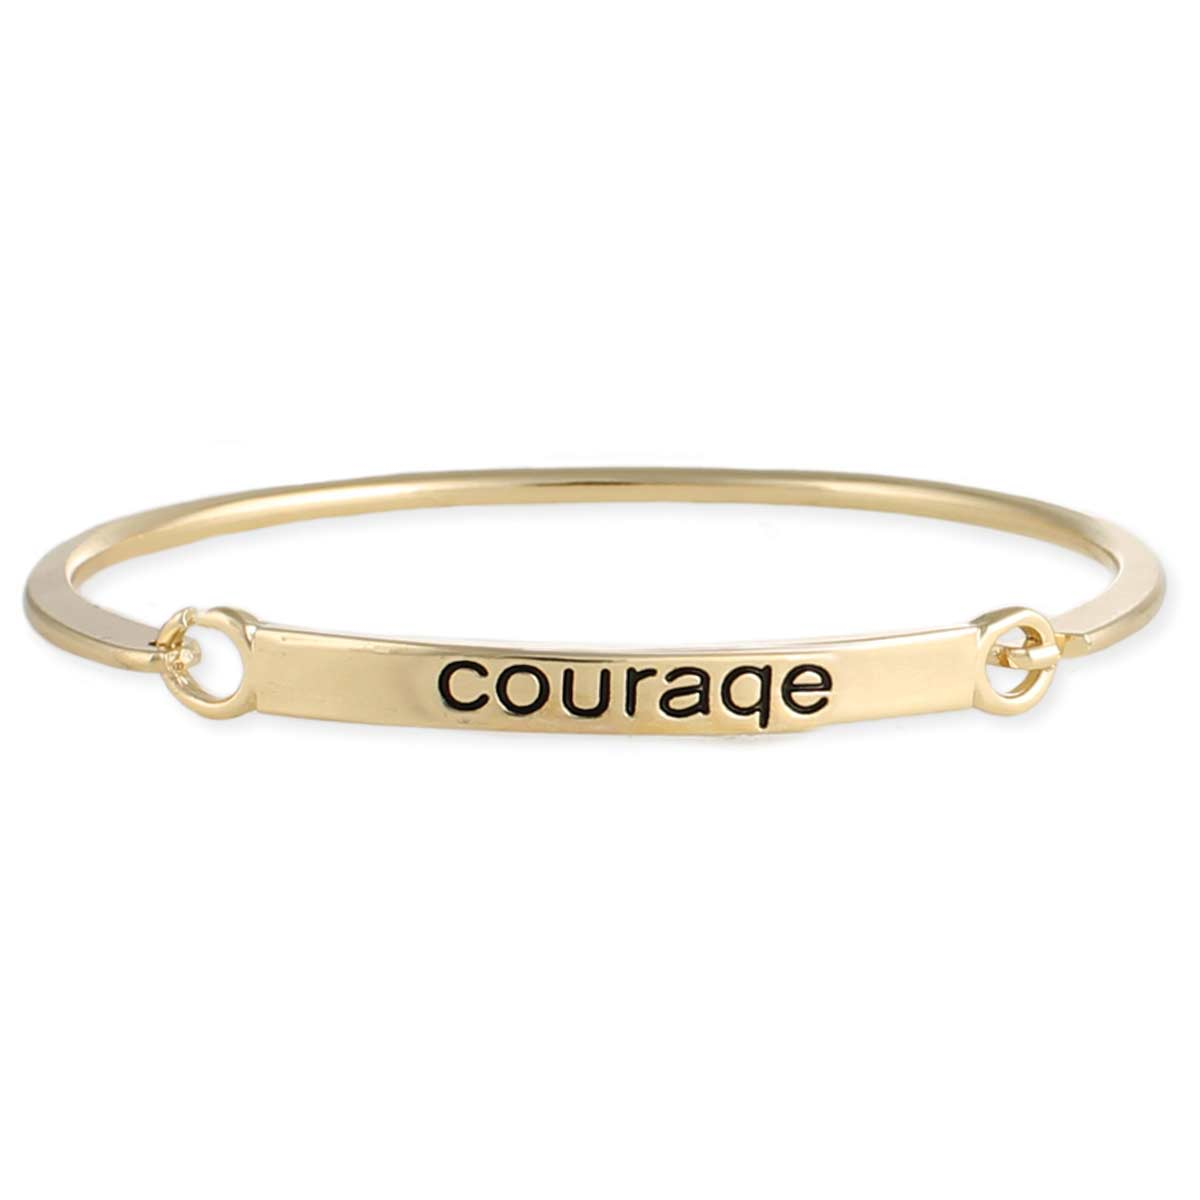 courage change and can serenity the accept cannot to wisdom i god bg me silver difference grant things know bracelet amen